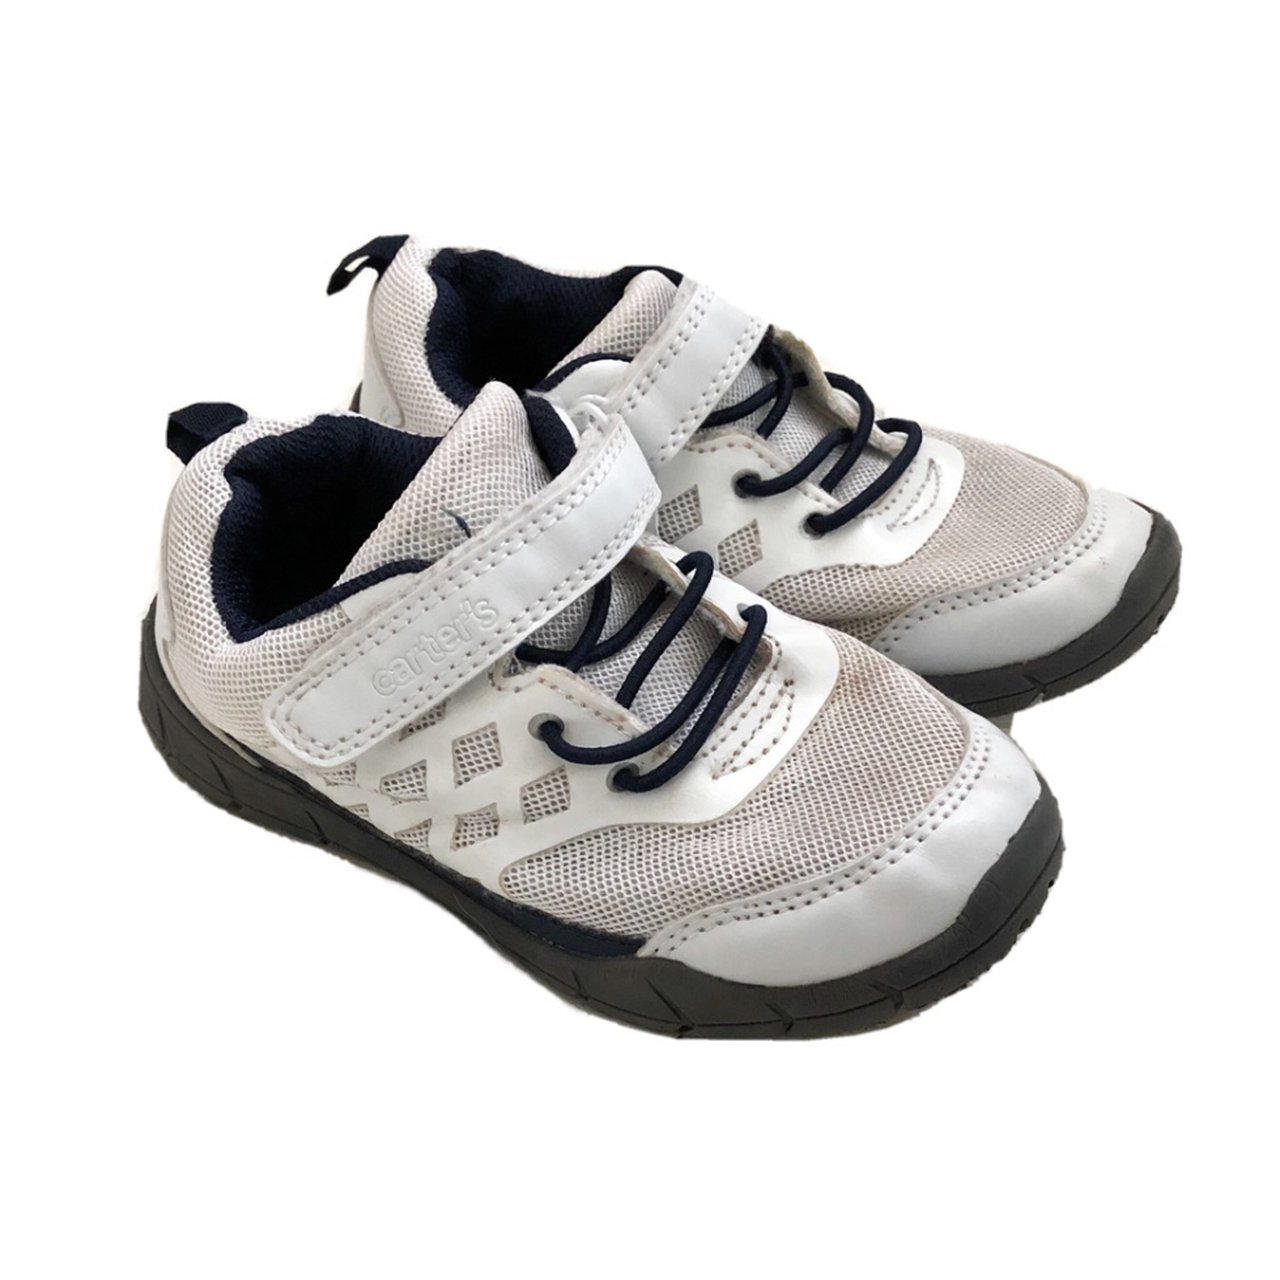 Boys Trainer Shoes, Size 10kids, Brand